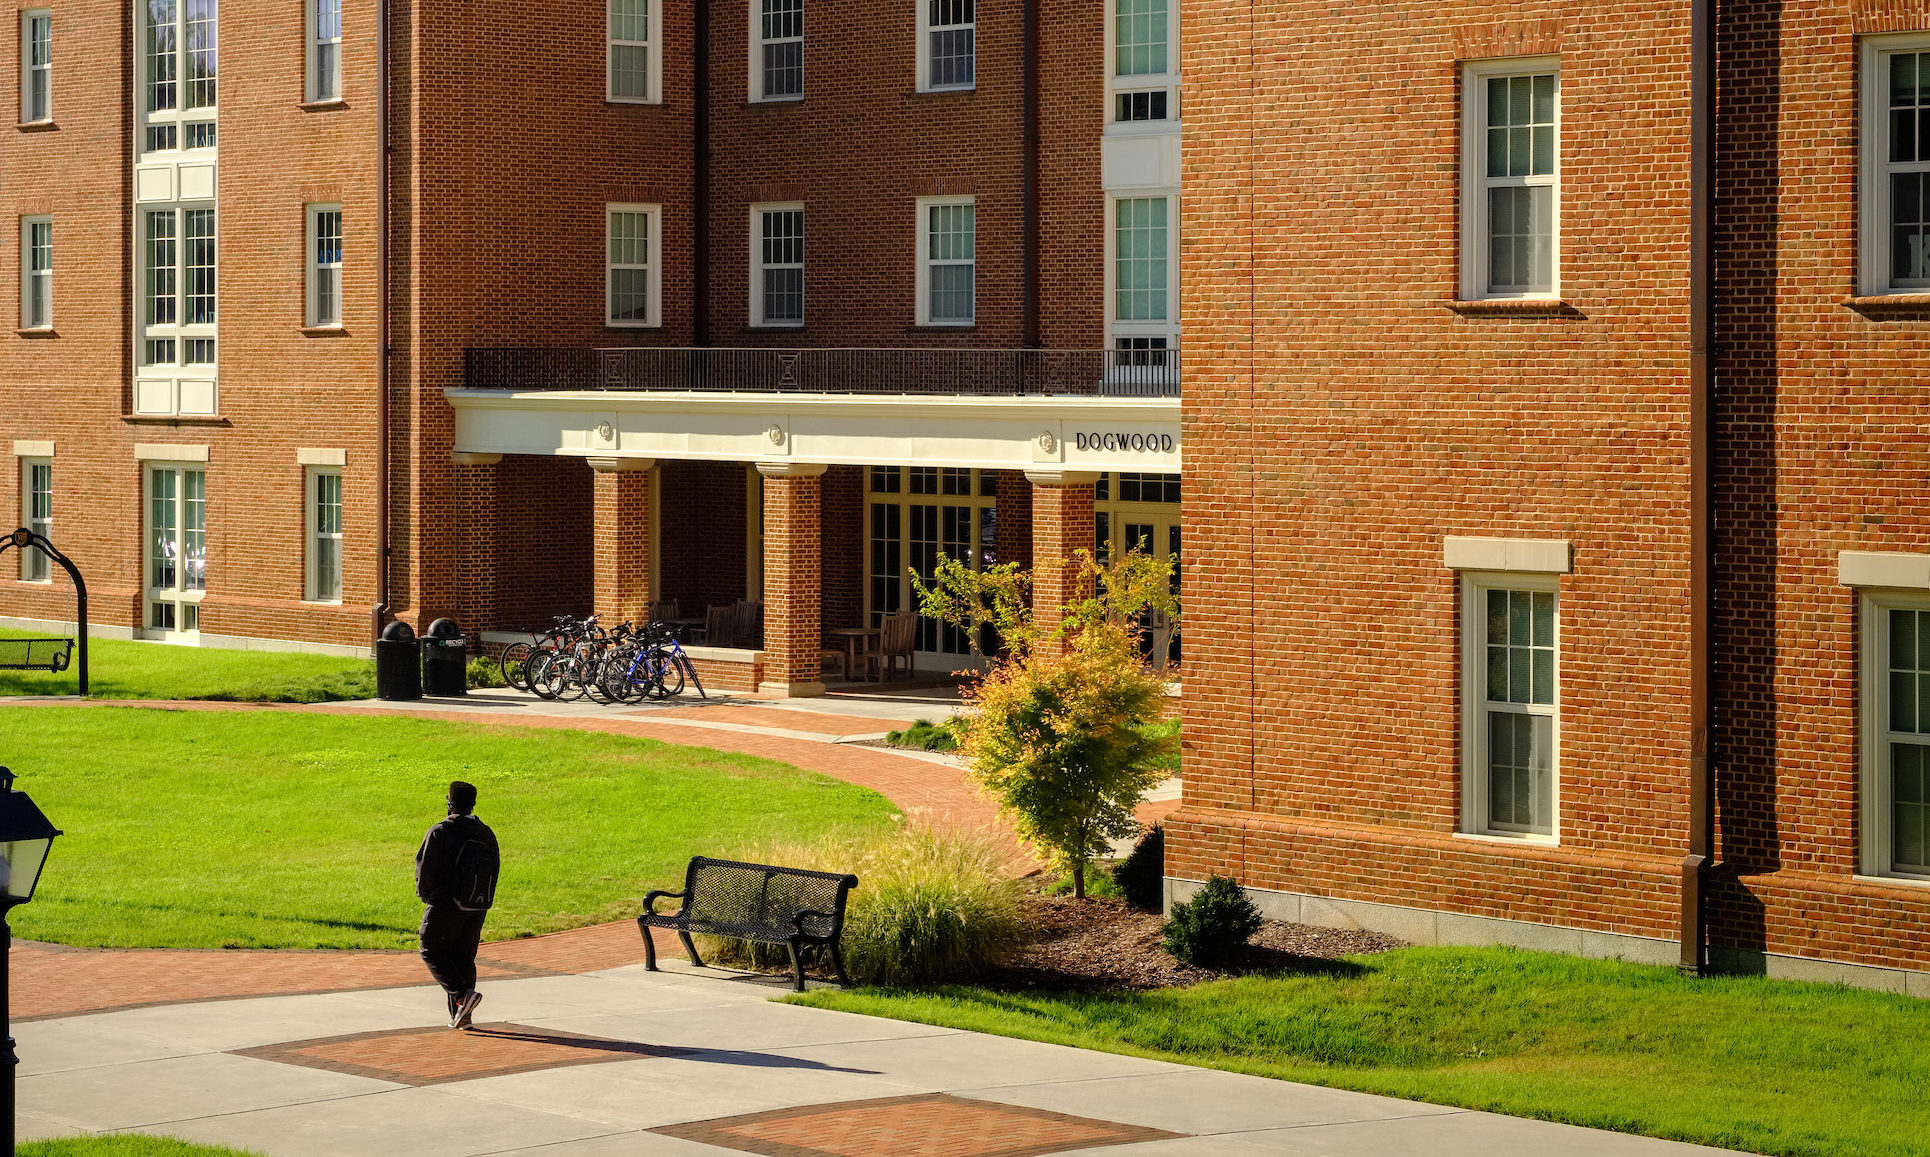 Courtyard view of Dogwood Residence Hall